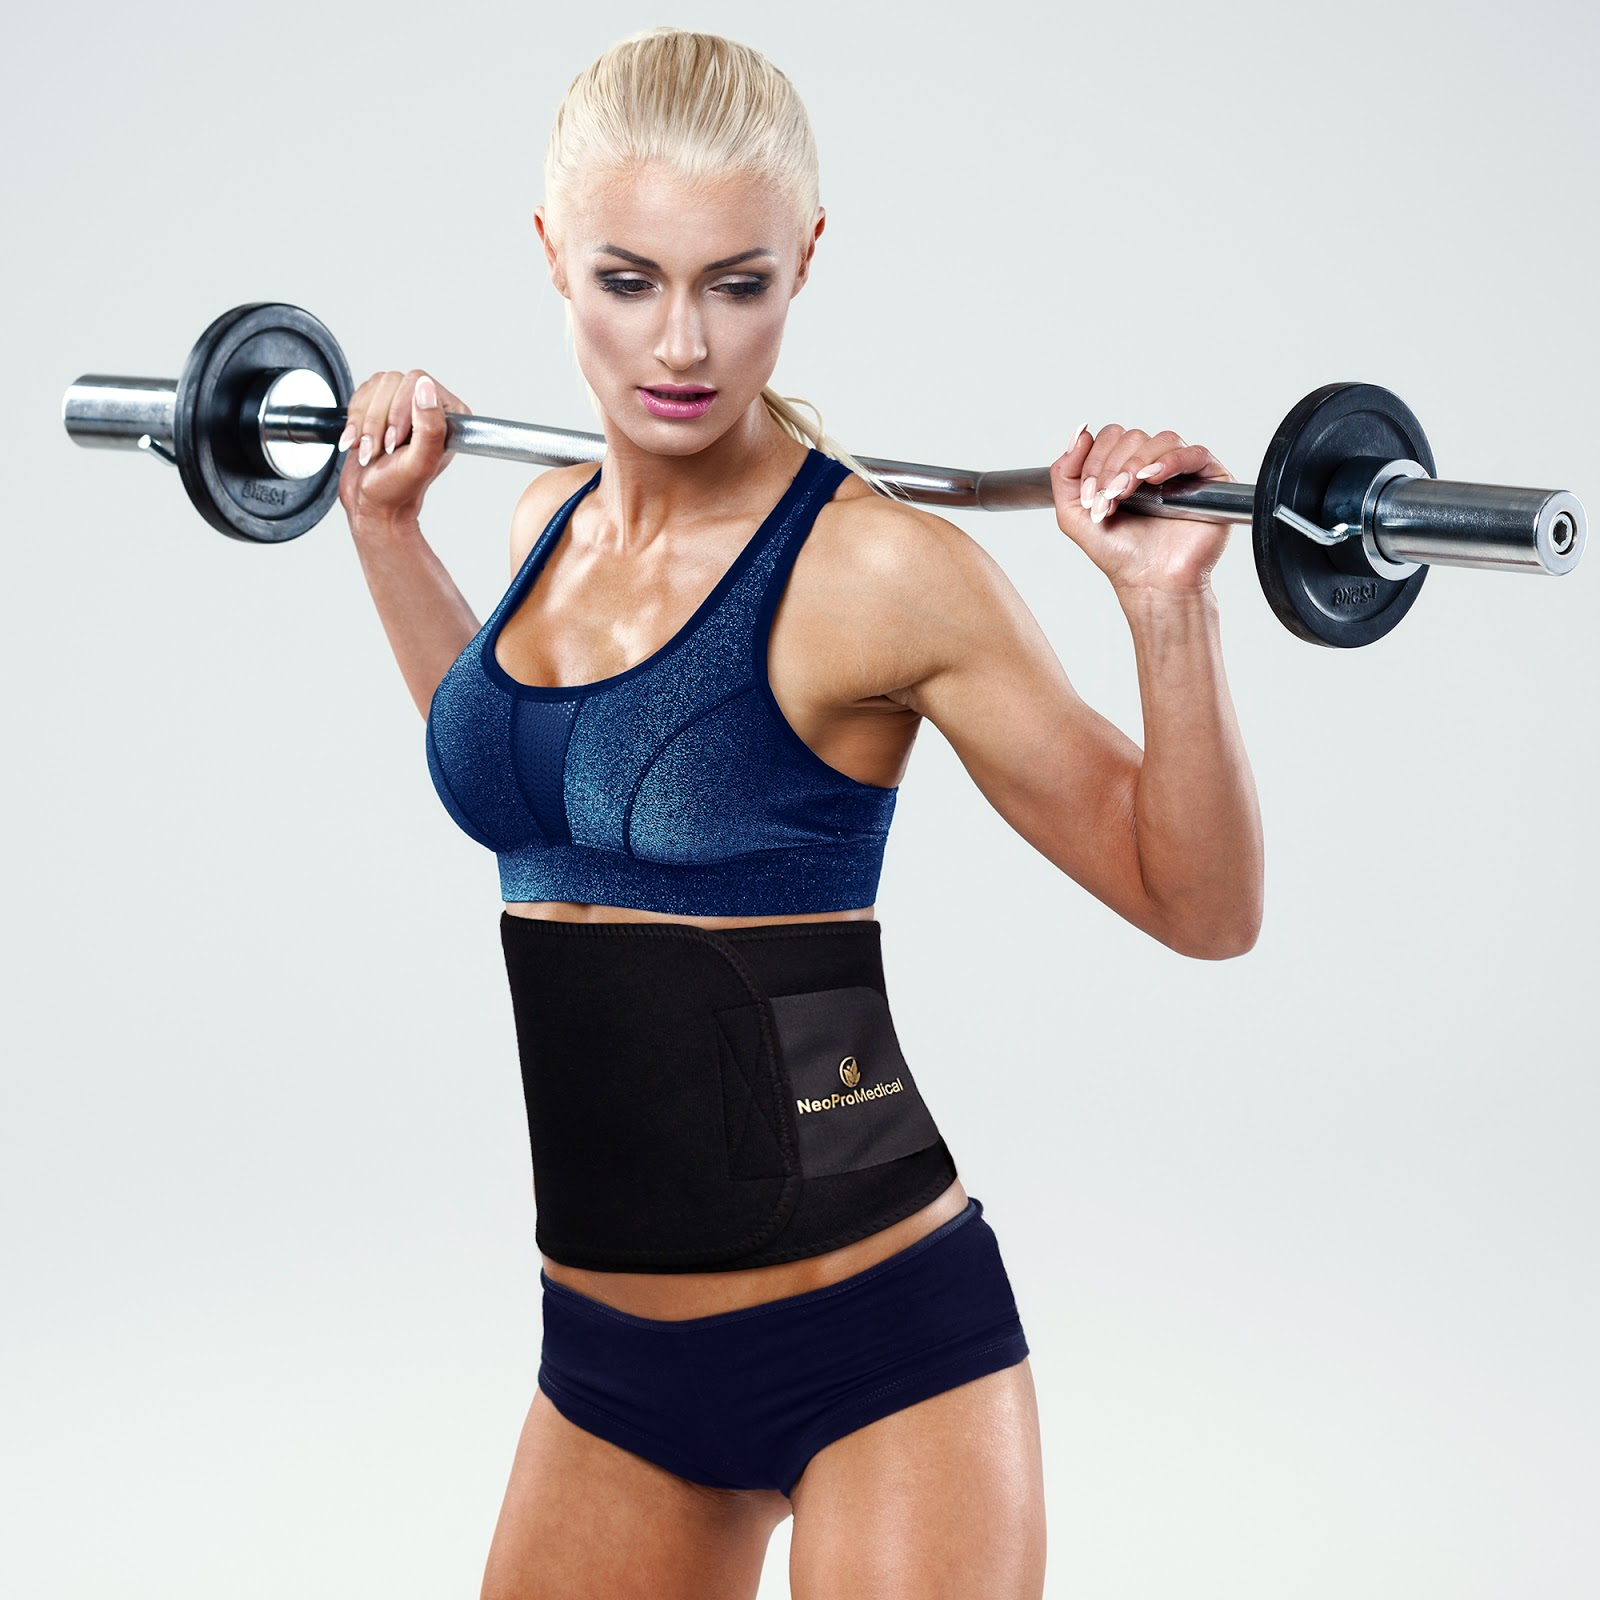 62a9ff9a17 I received the Waist Trimmer Belt from NeoProMedical in exchange for an  honest review. I bought another one before this off groupon and this one is  so much ...